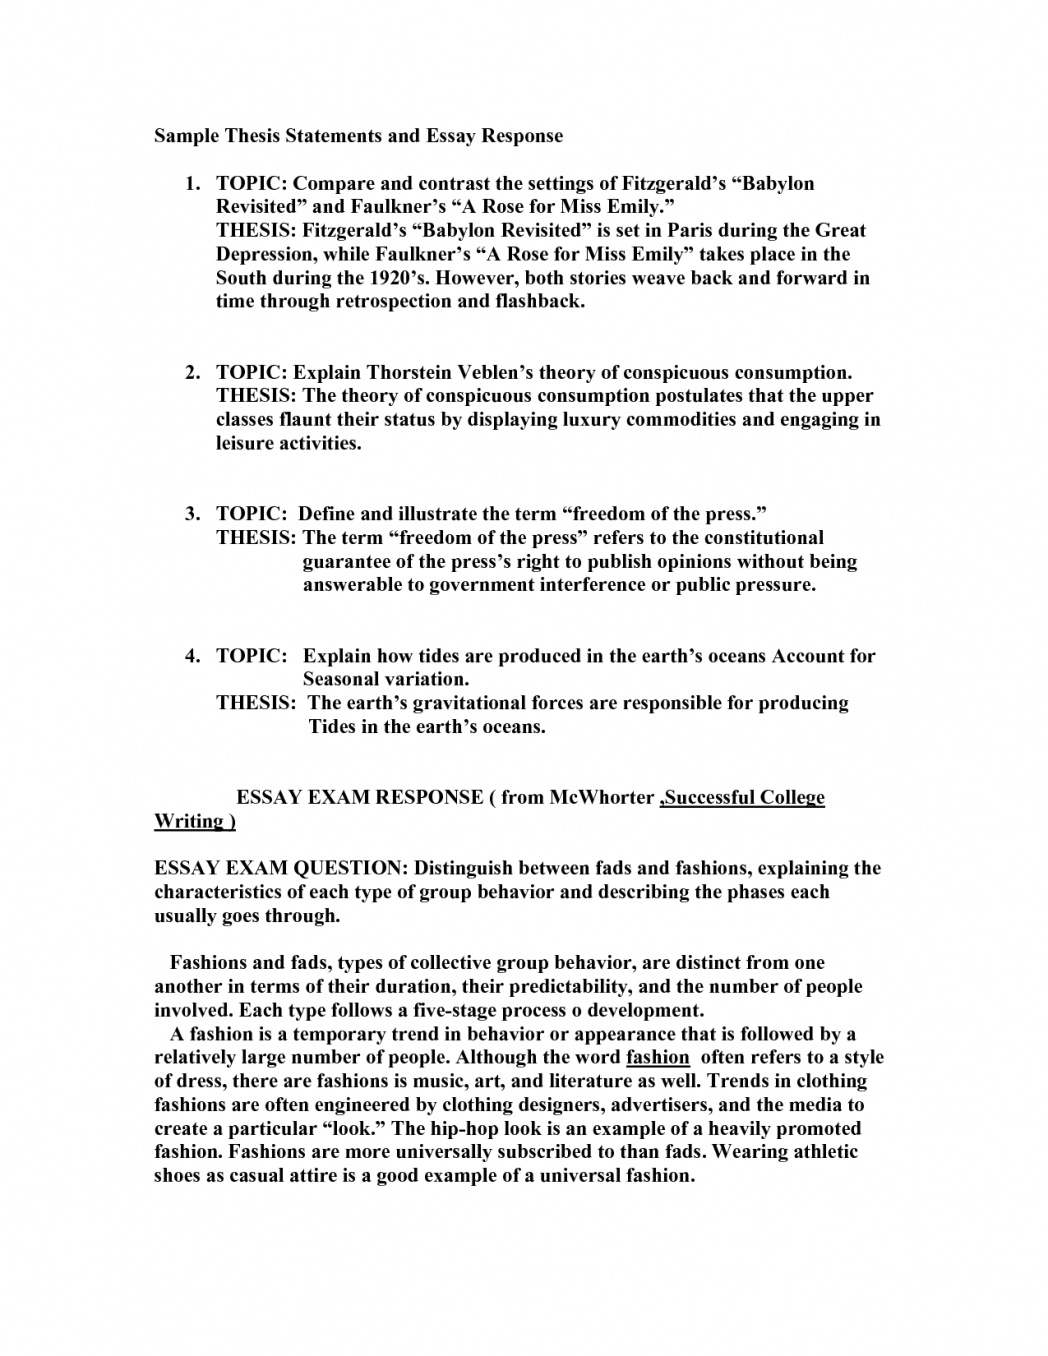 023 Thesis Statement Essay Example Of In An How To Write For About Yourself 6na1p Argumentative Step By Expository High School Ppt Informative Analysis Pdf 1048x1356 Frightening A Do You Full